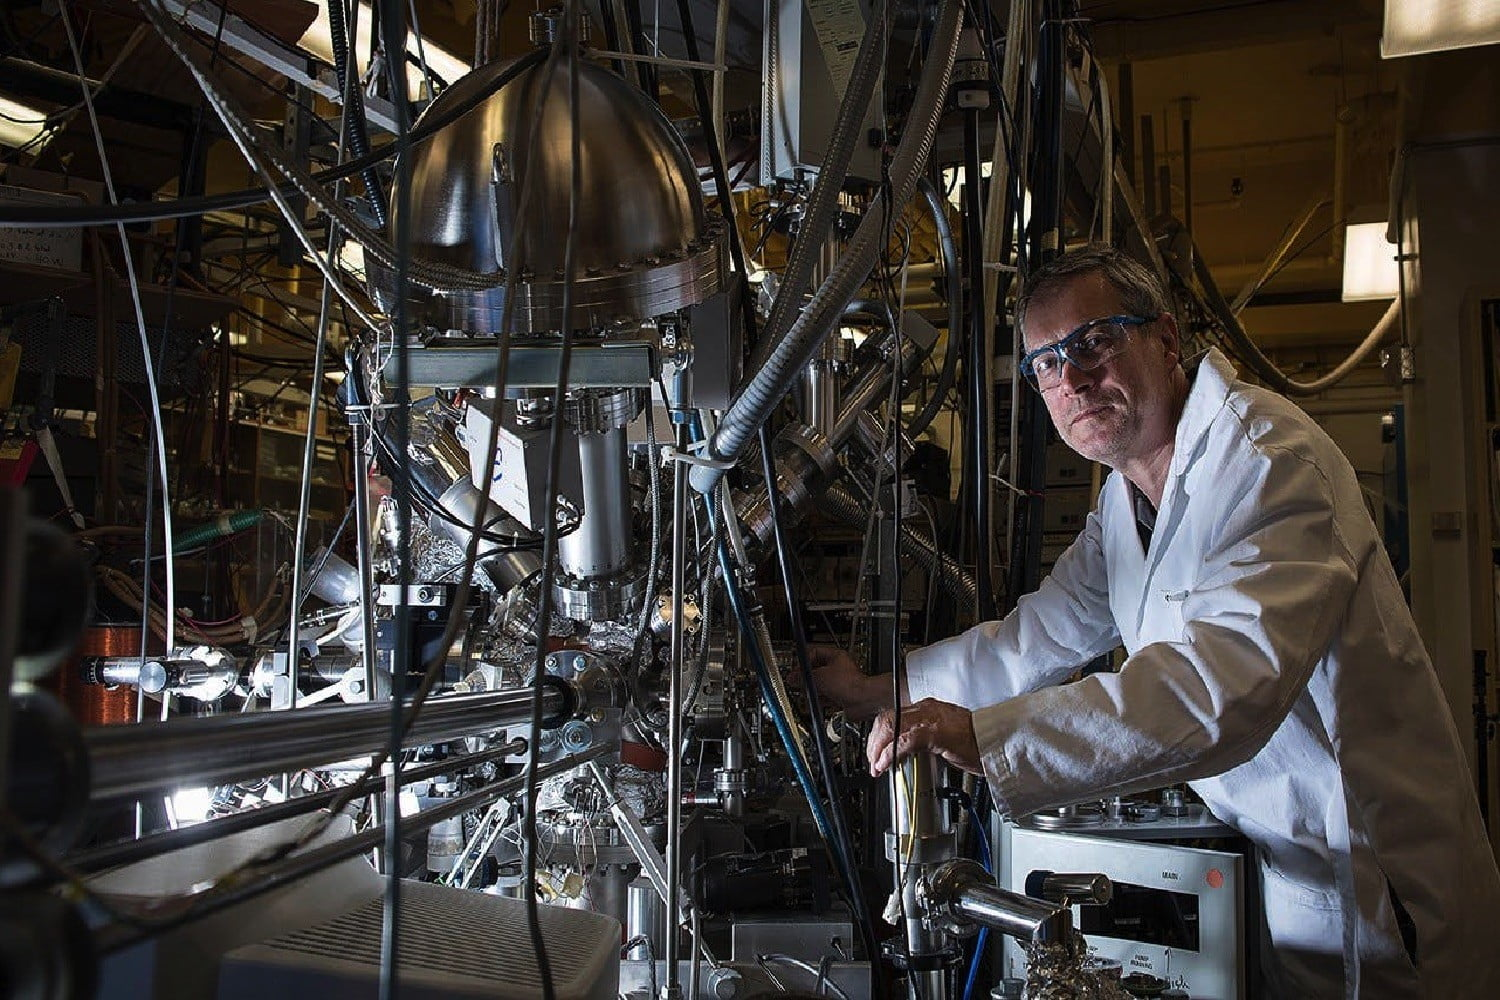 Caltech's new CO2 recycler could be a game-changer for space exploration